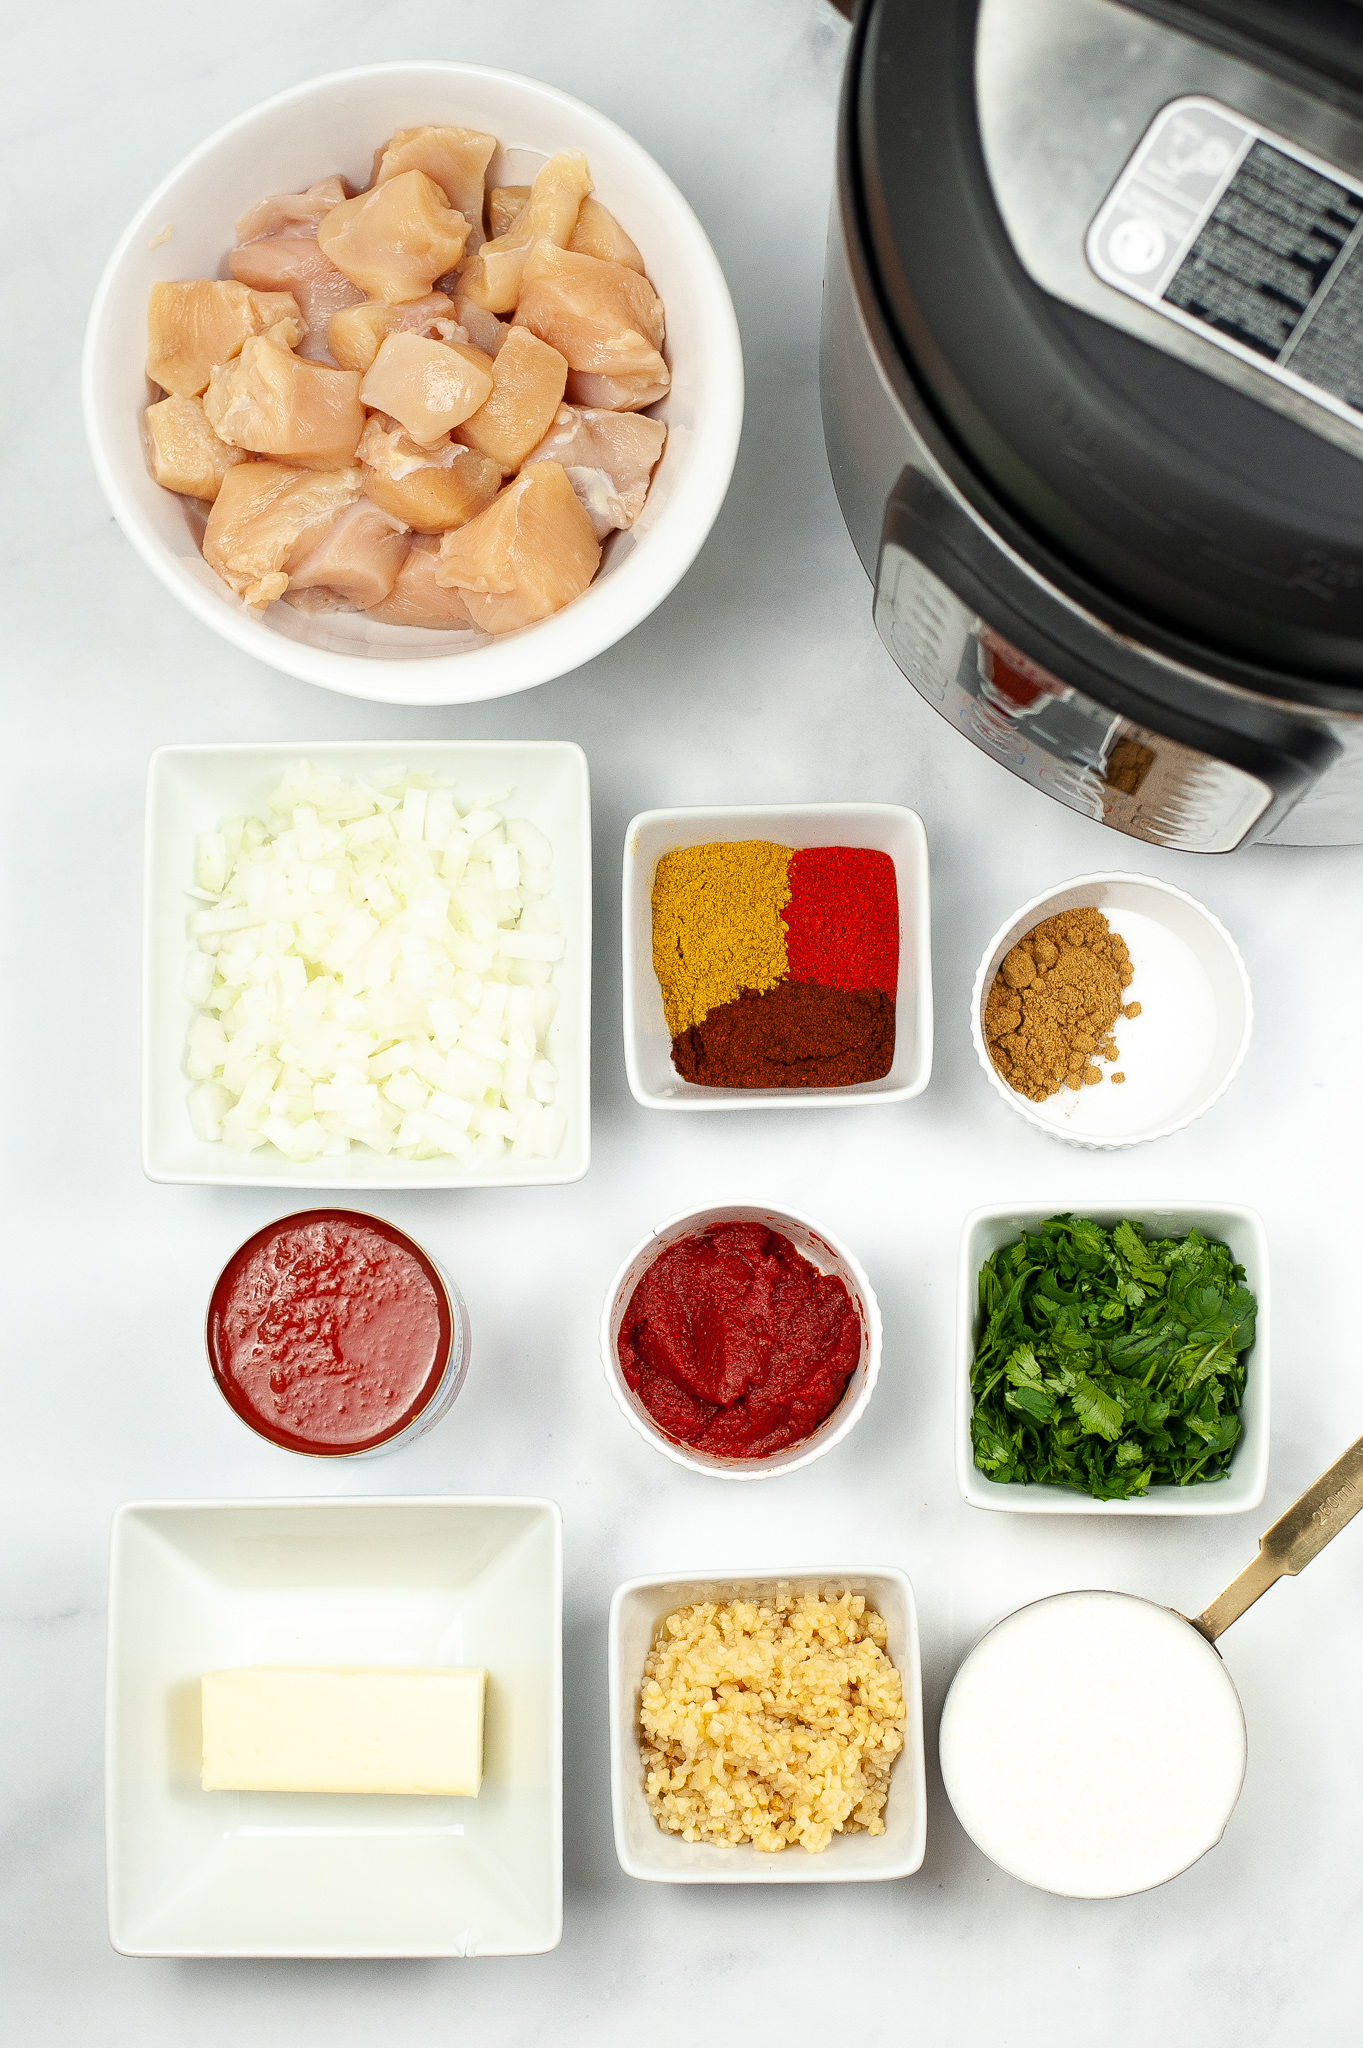 Dishes with the ingredients needed to make Instant Pot Butter Chicken. Including Chicken, spices, garlic etc.